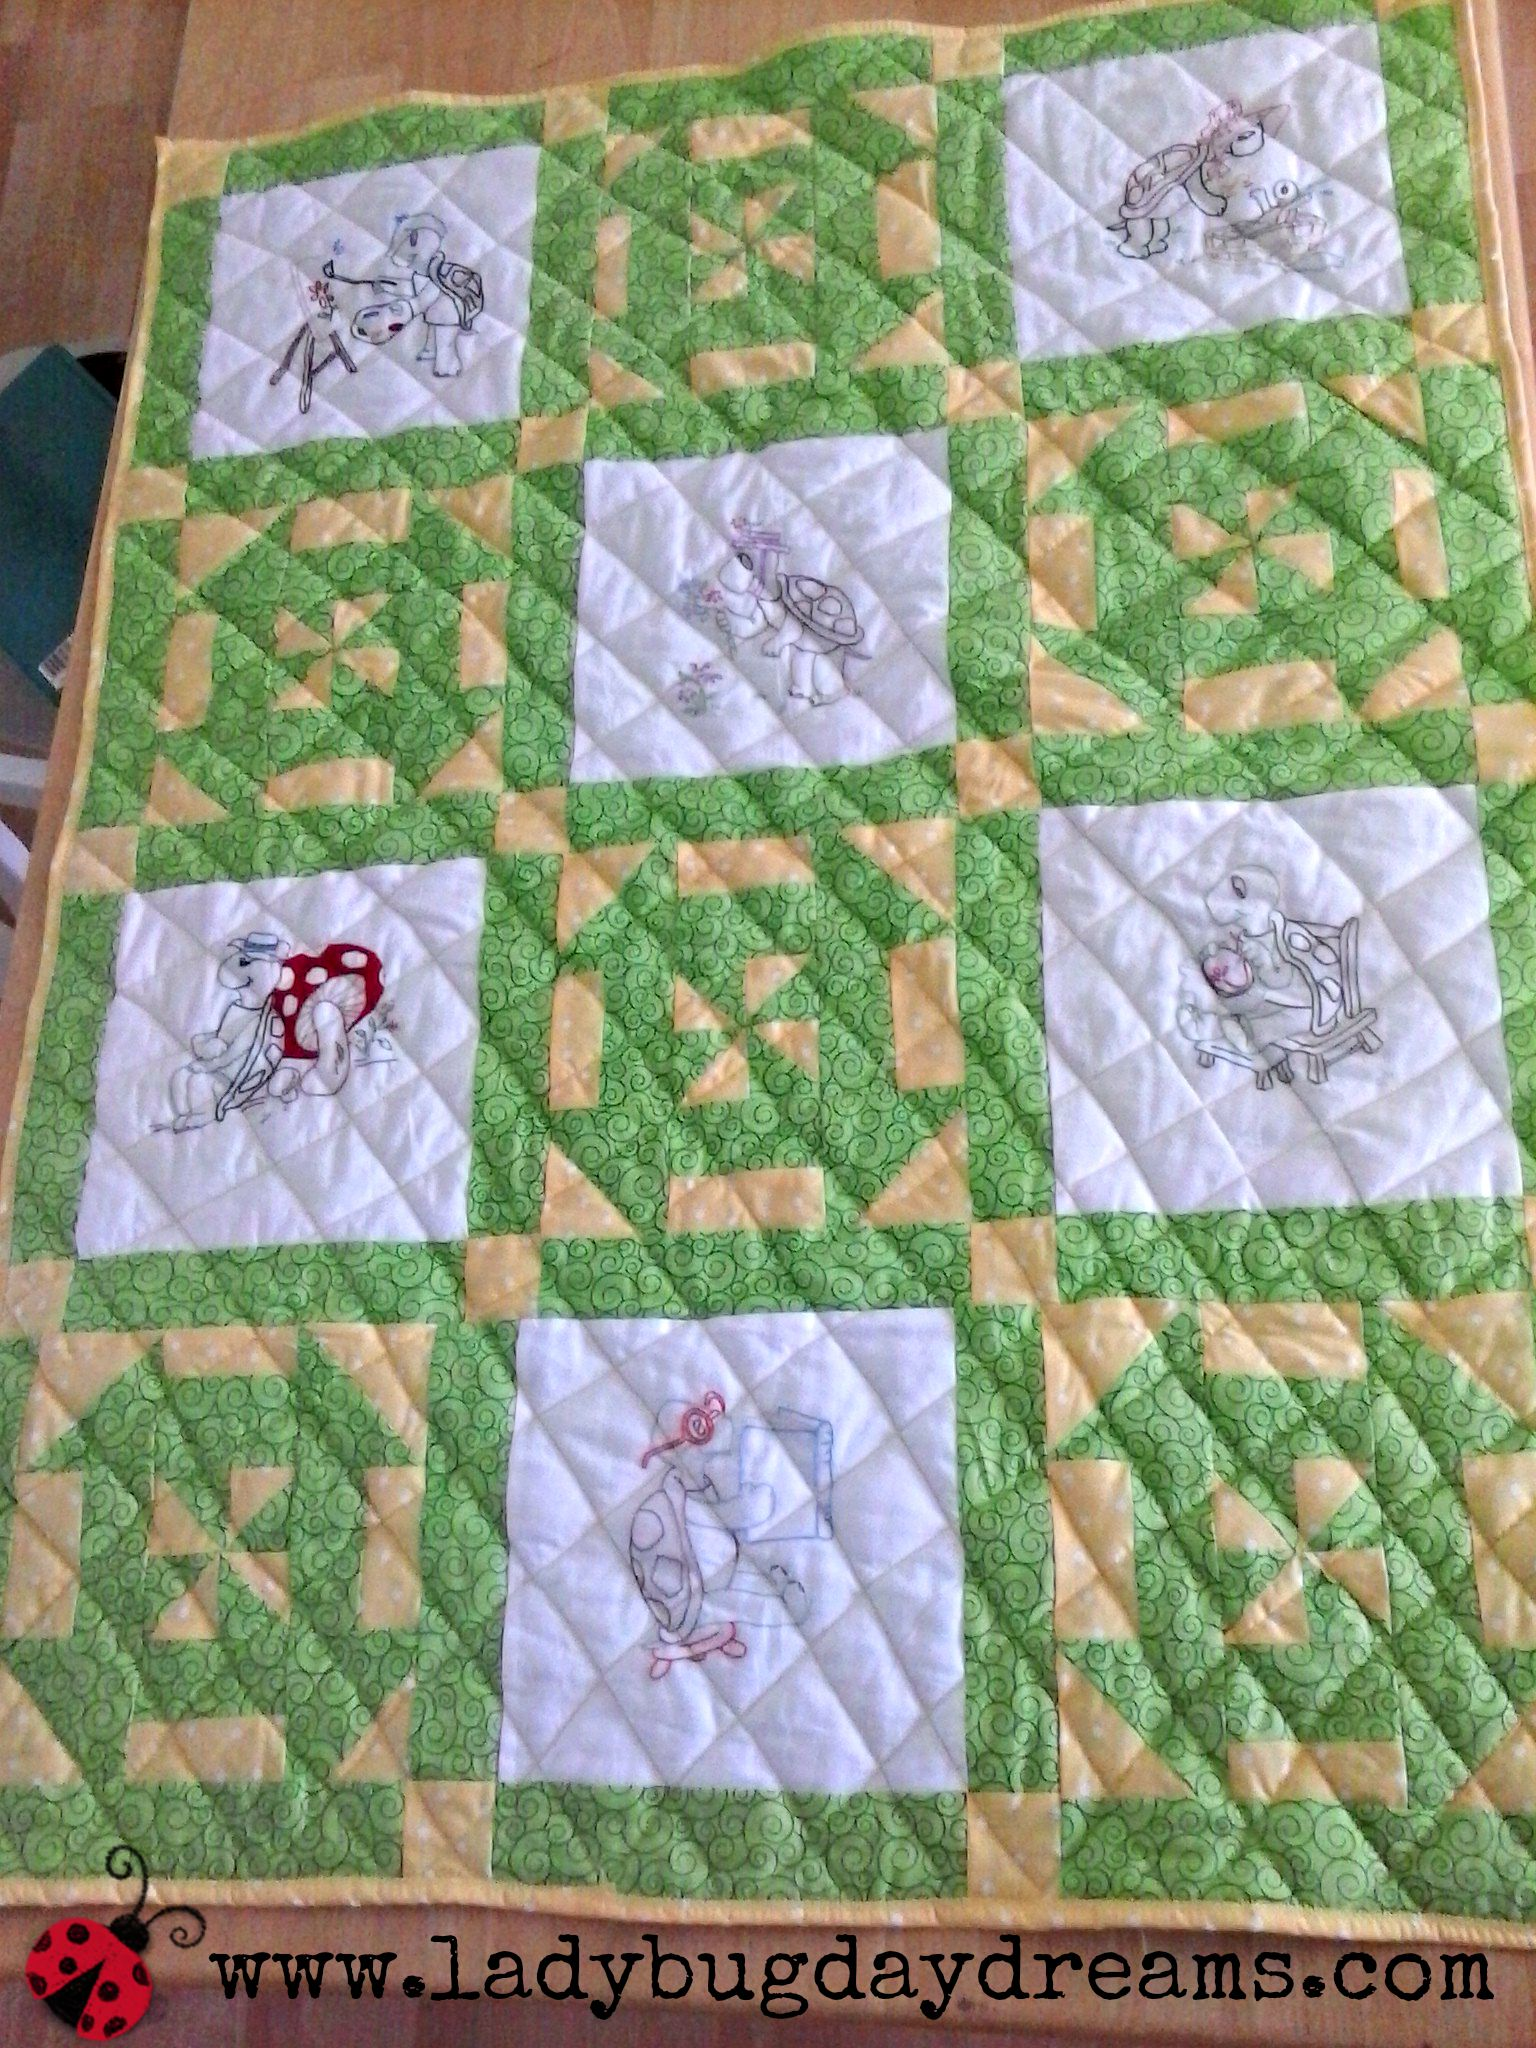 Embroidered turtle quilt with pieced blocks